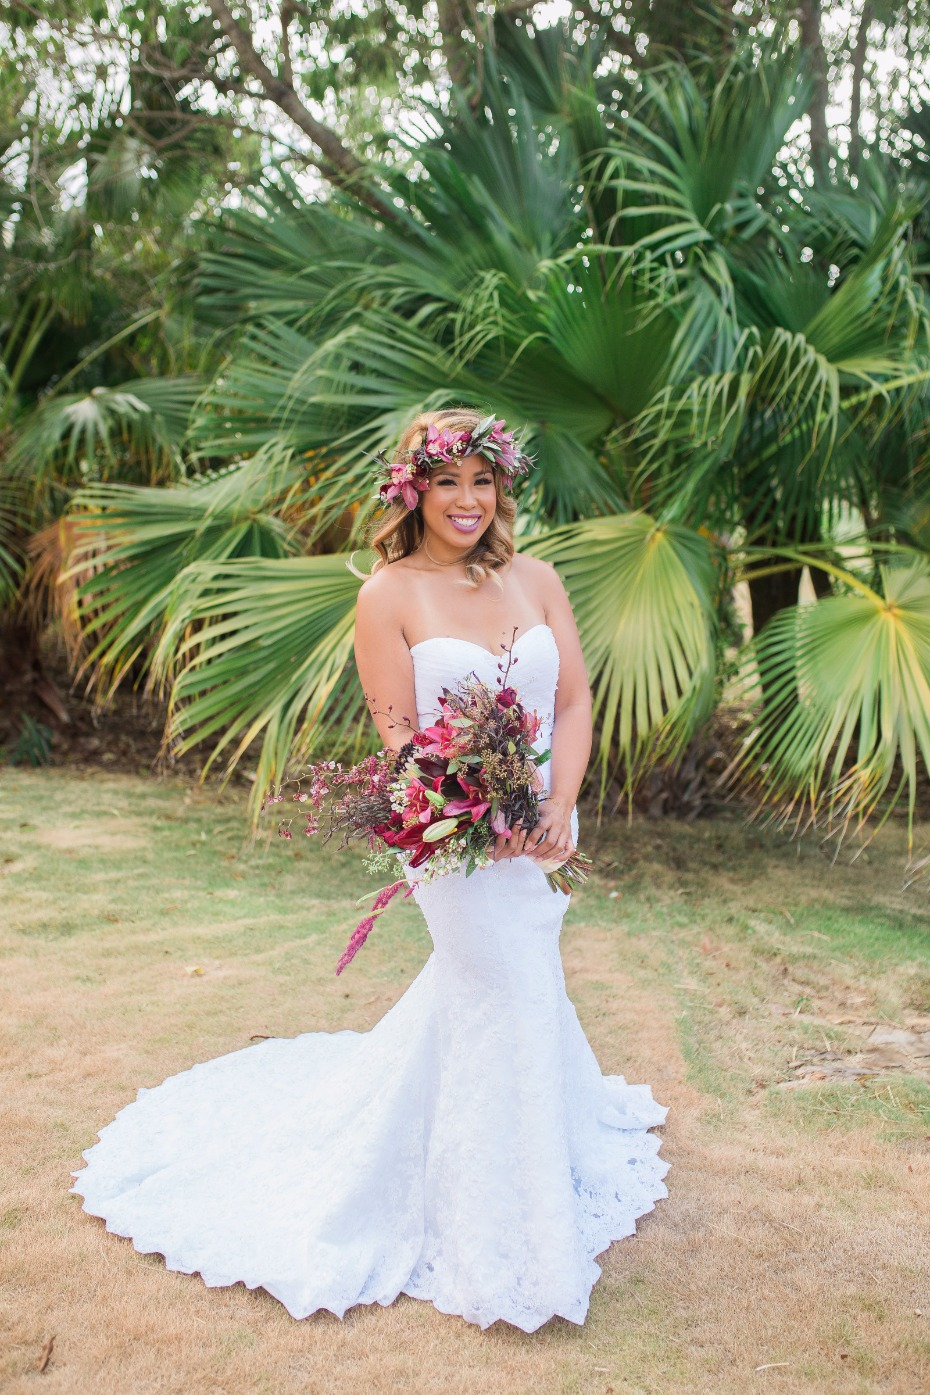 Real Life Moana Wedding Inspo Has Us Loving Fall In Hawaii